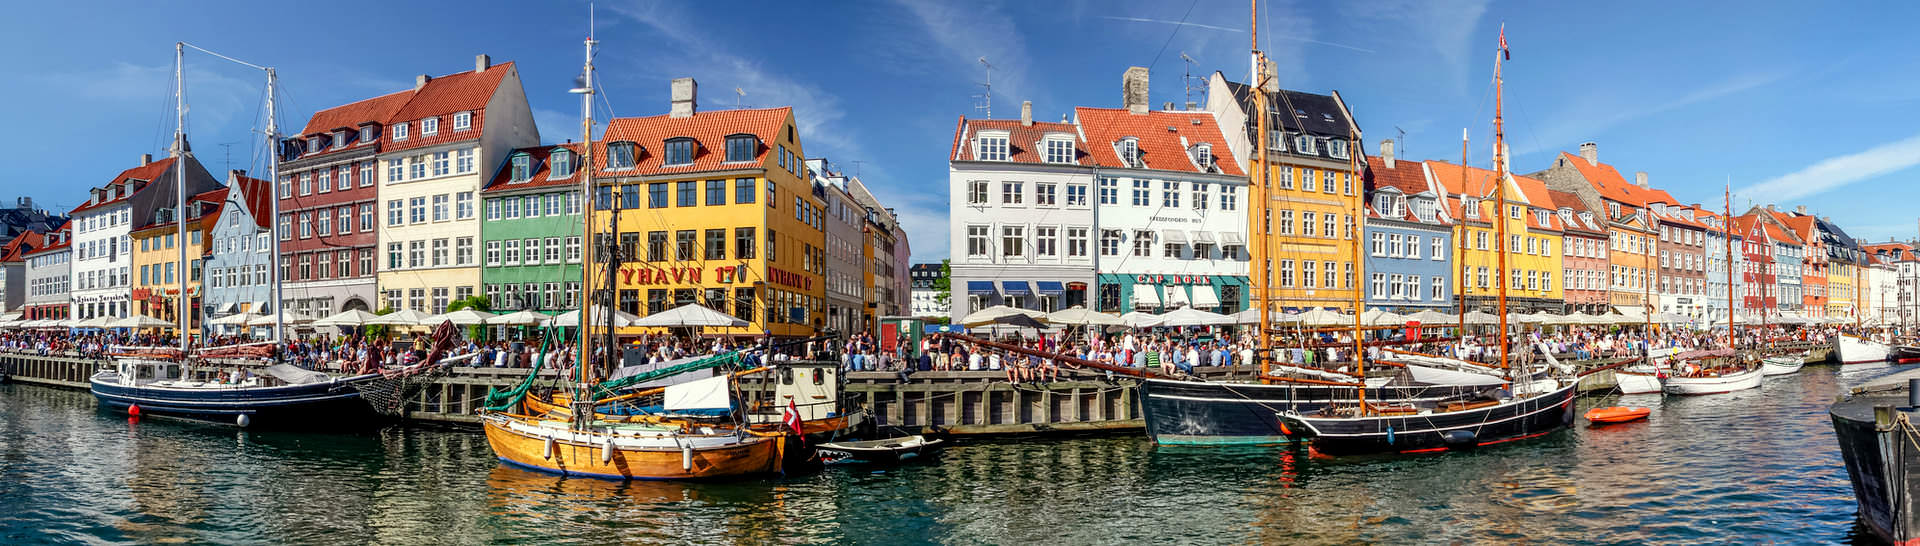 Nyhavn harbor is the most famous attraction in the capital of Denmark - Copenhagen